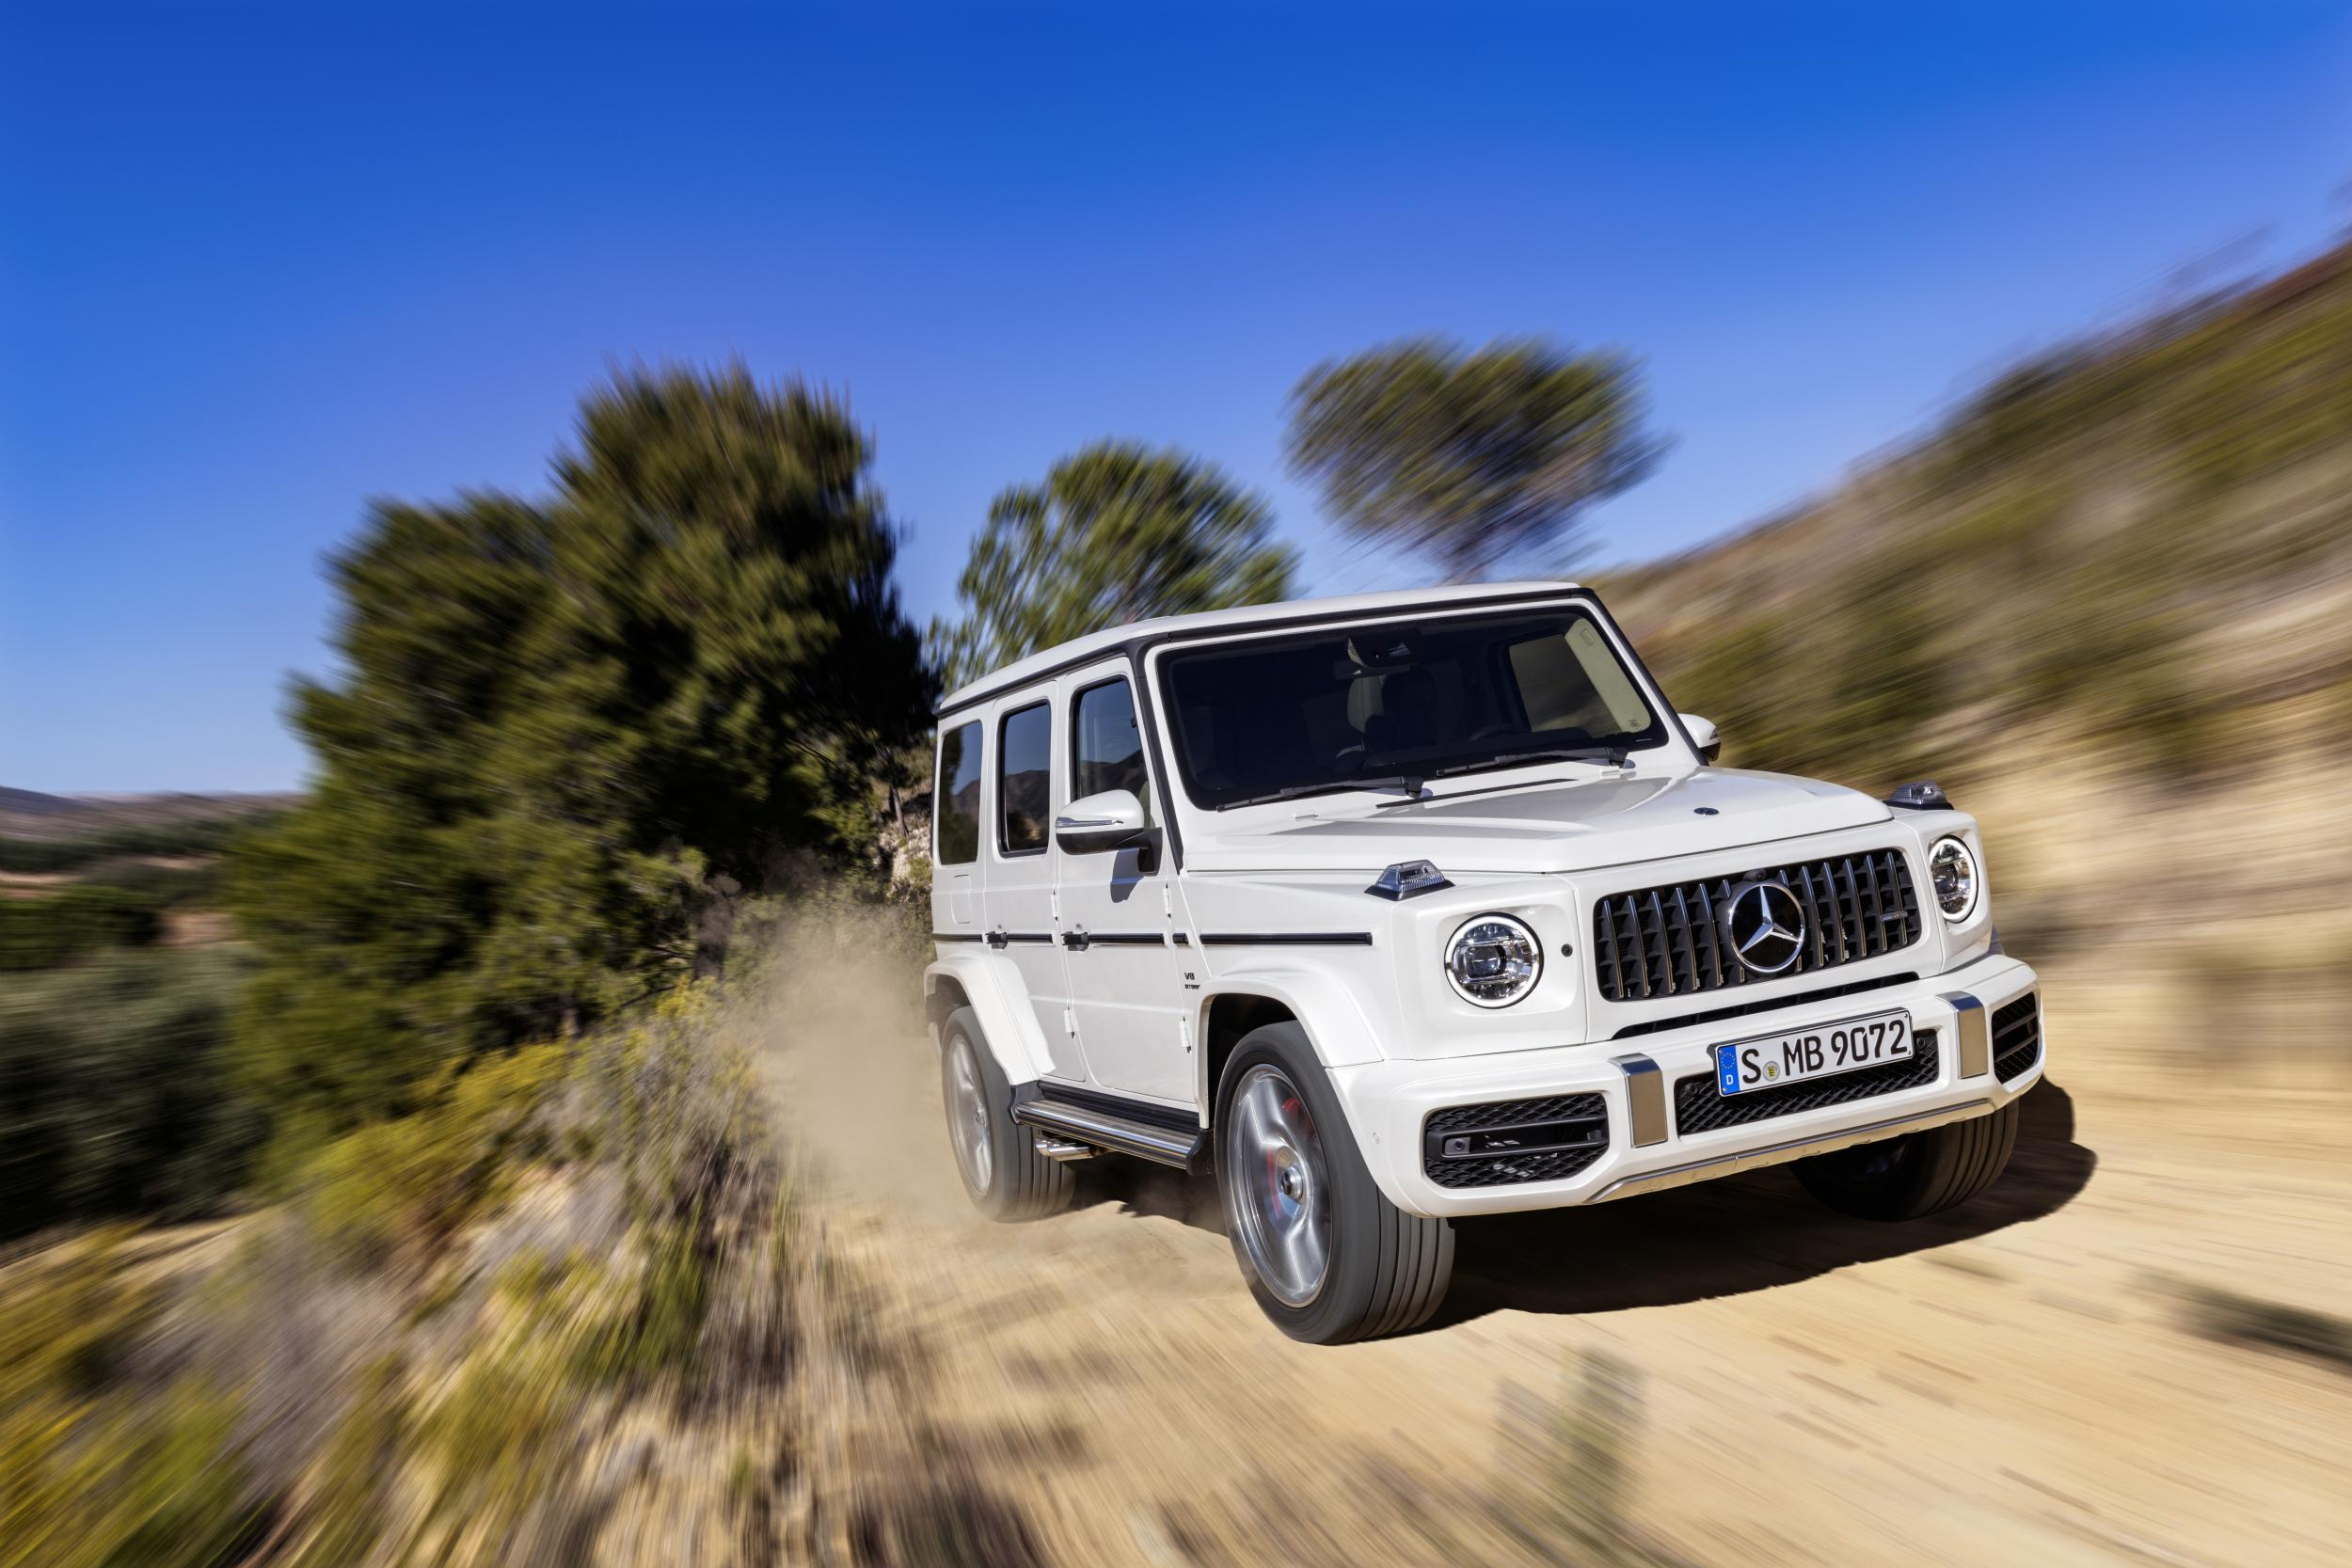 Mercedes-AMG G63 car review: One very fast SUV that drives like a